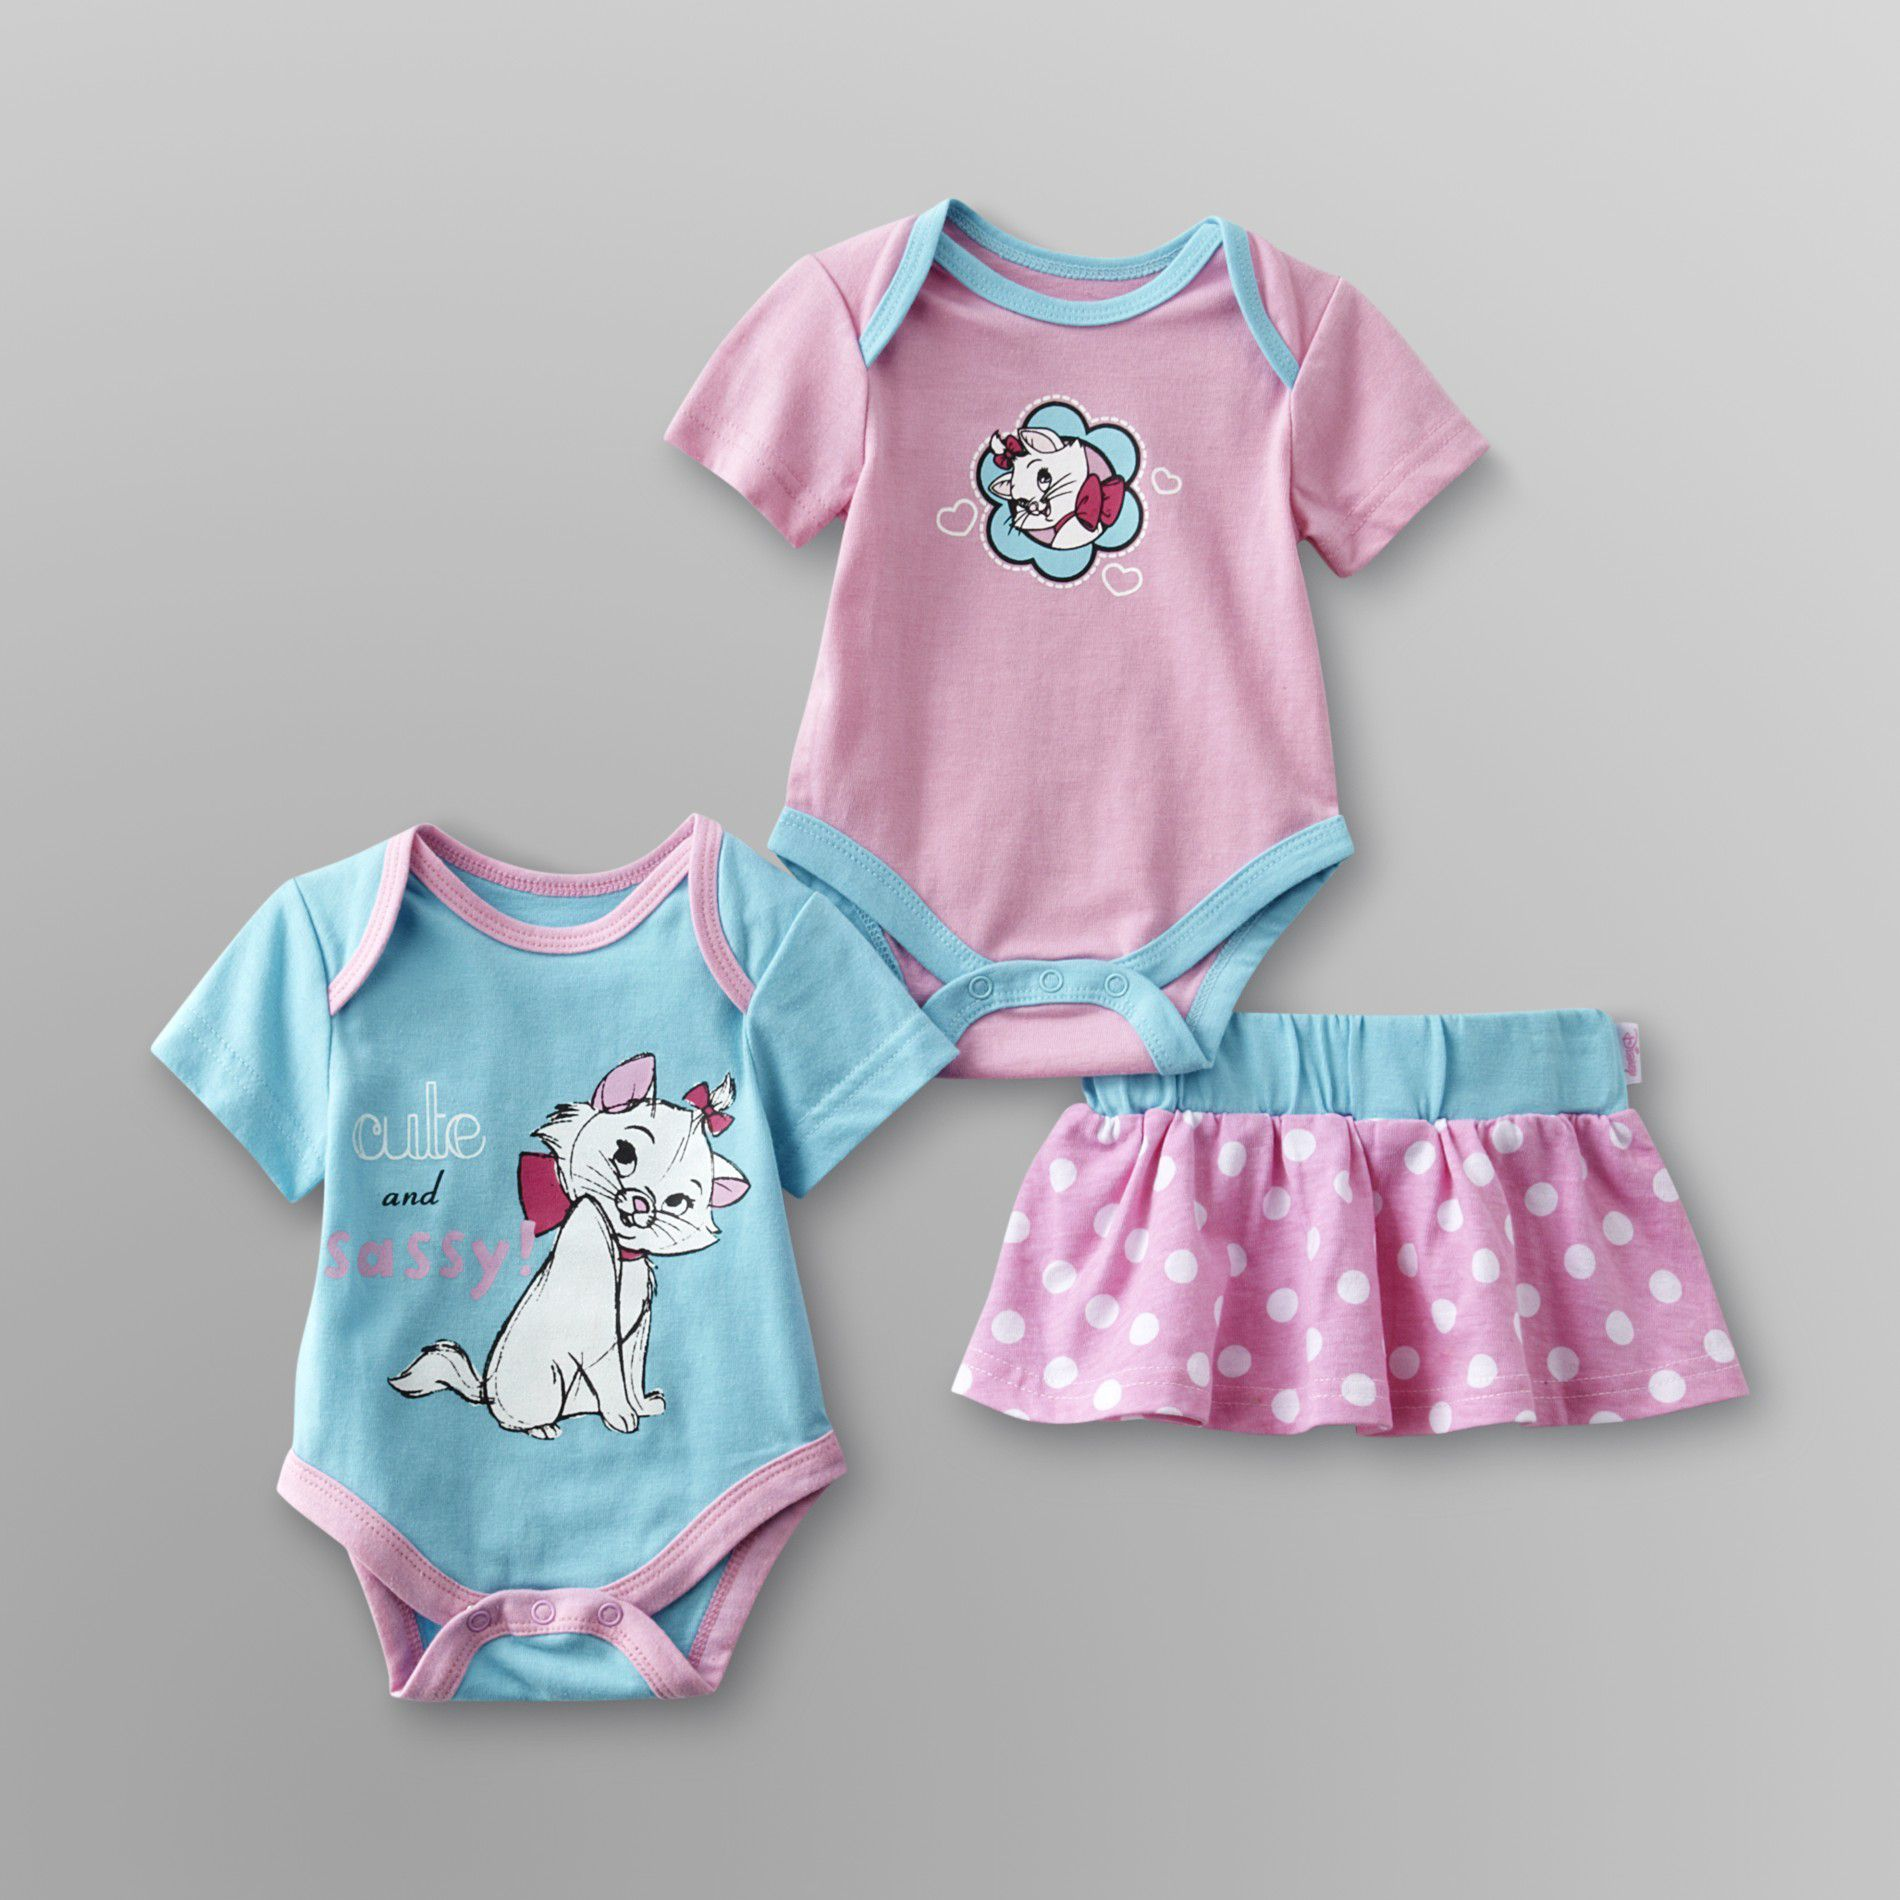 2f940b5658d2 Disney- -The Aristocats Newborn Girls Bodysuits & Skirt-Baby-Baby & Toddler  Clothing-Character Apparel